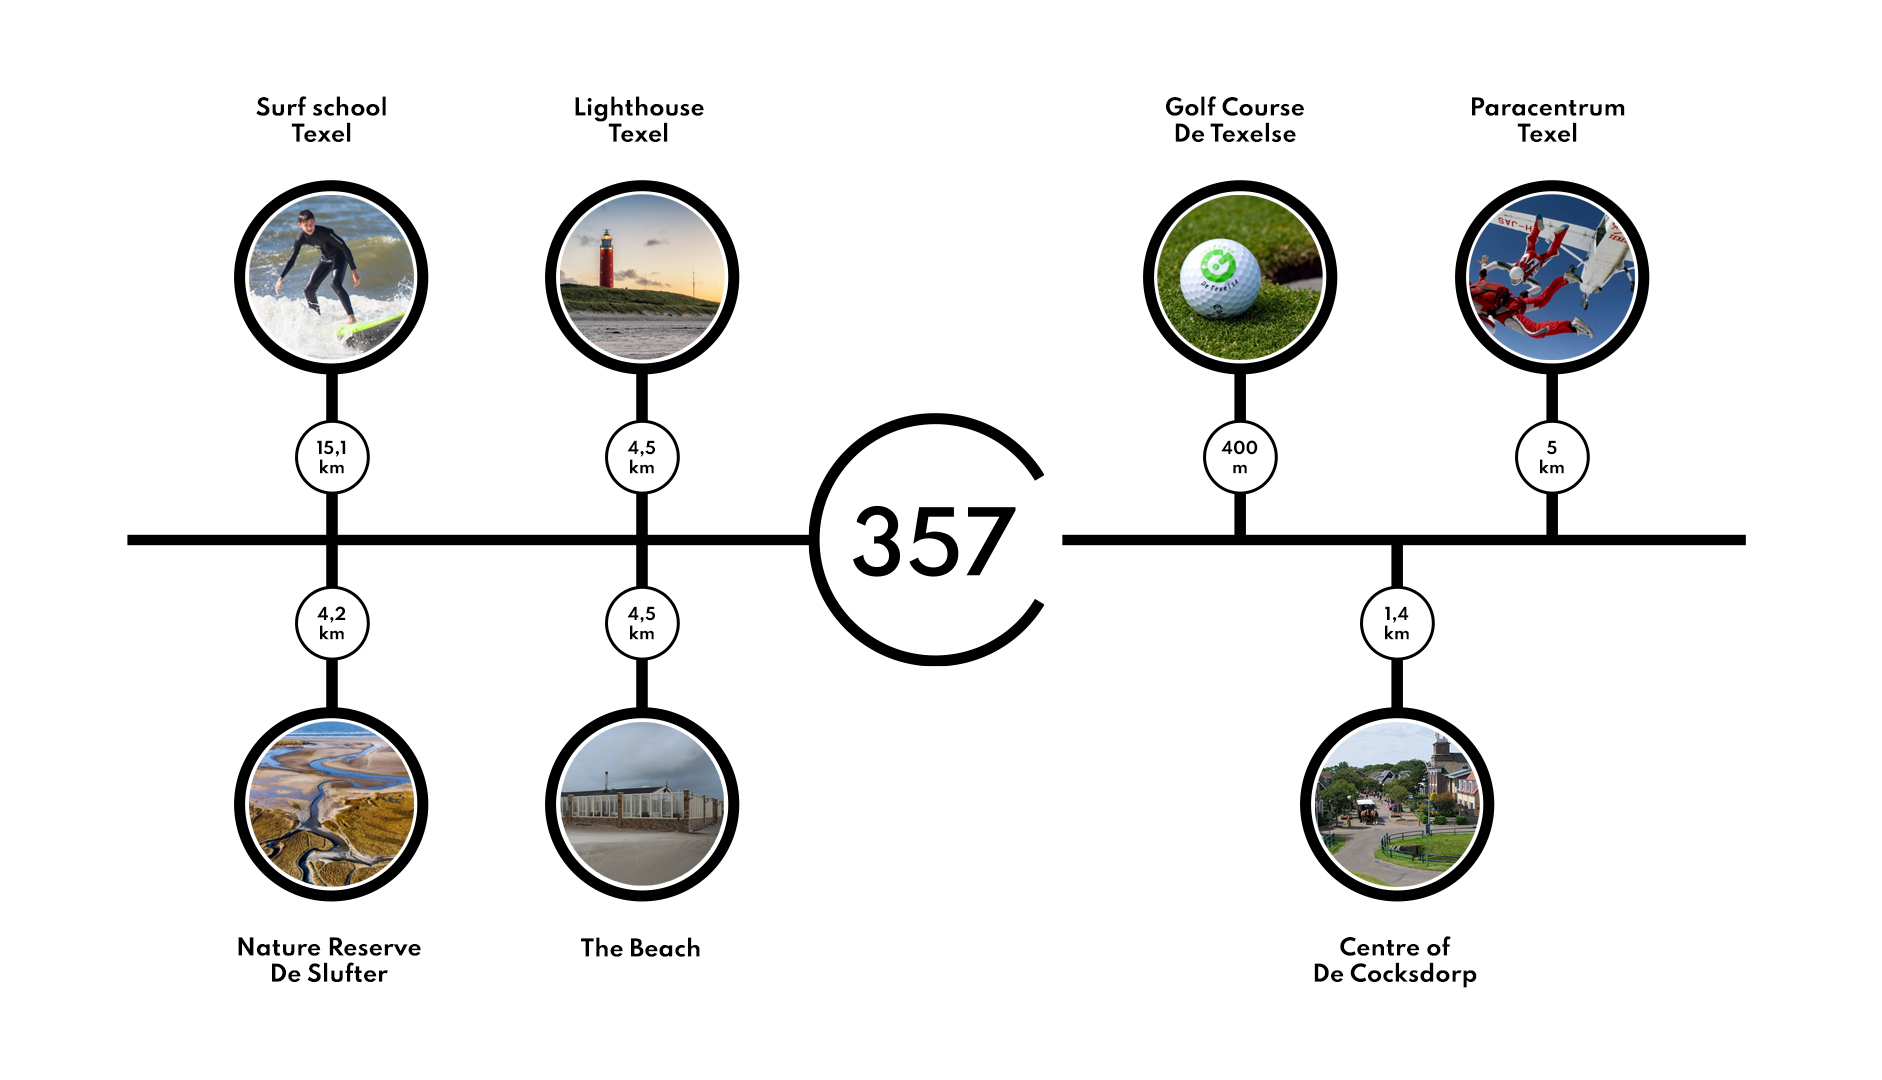 Graphic showing activities nearby accommodation